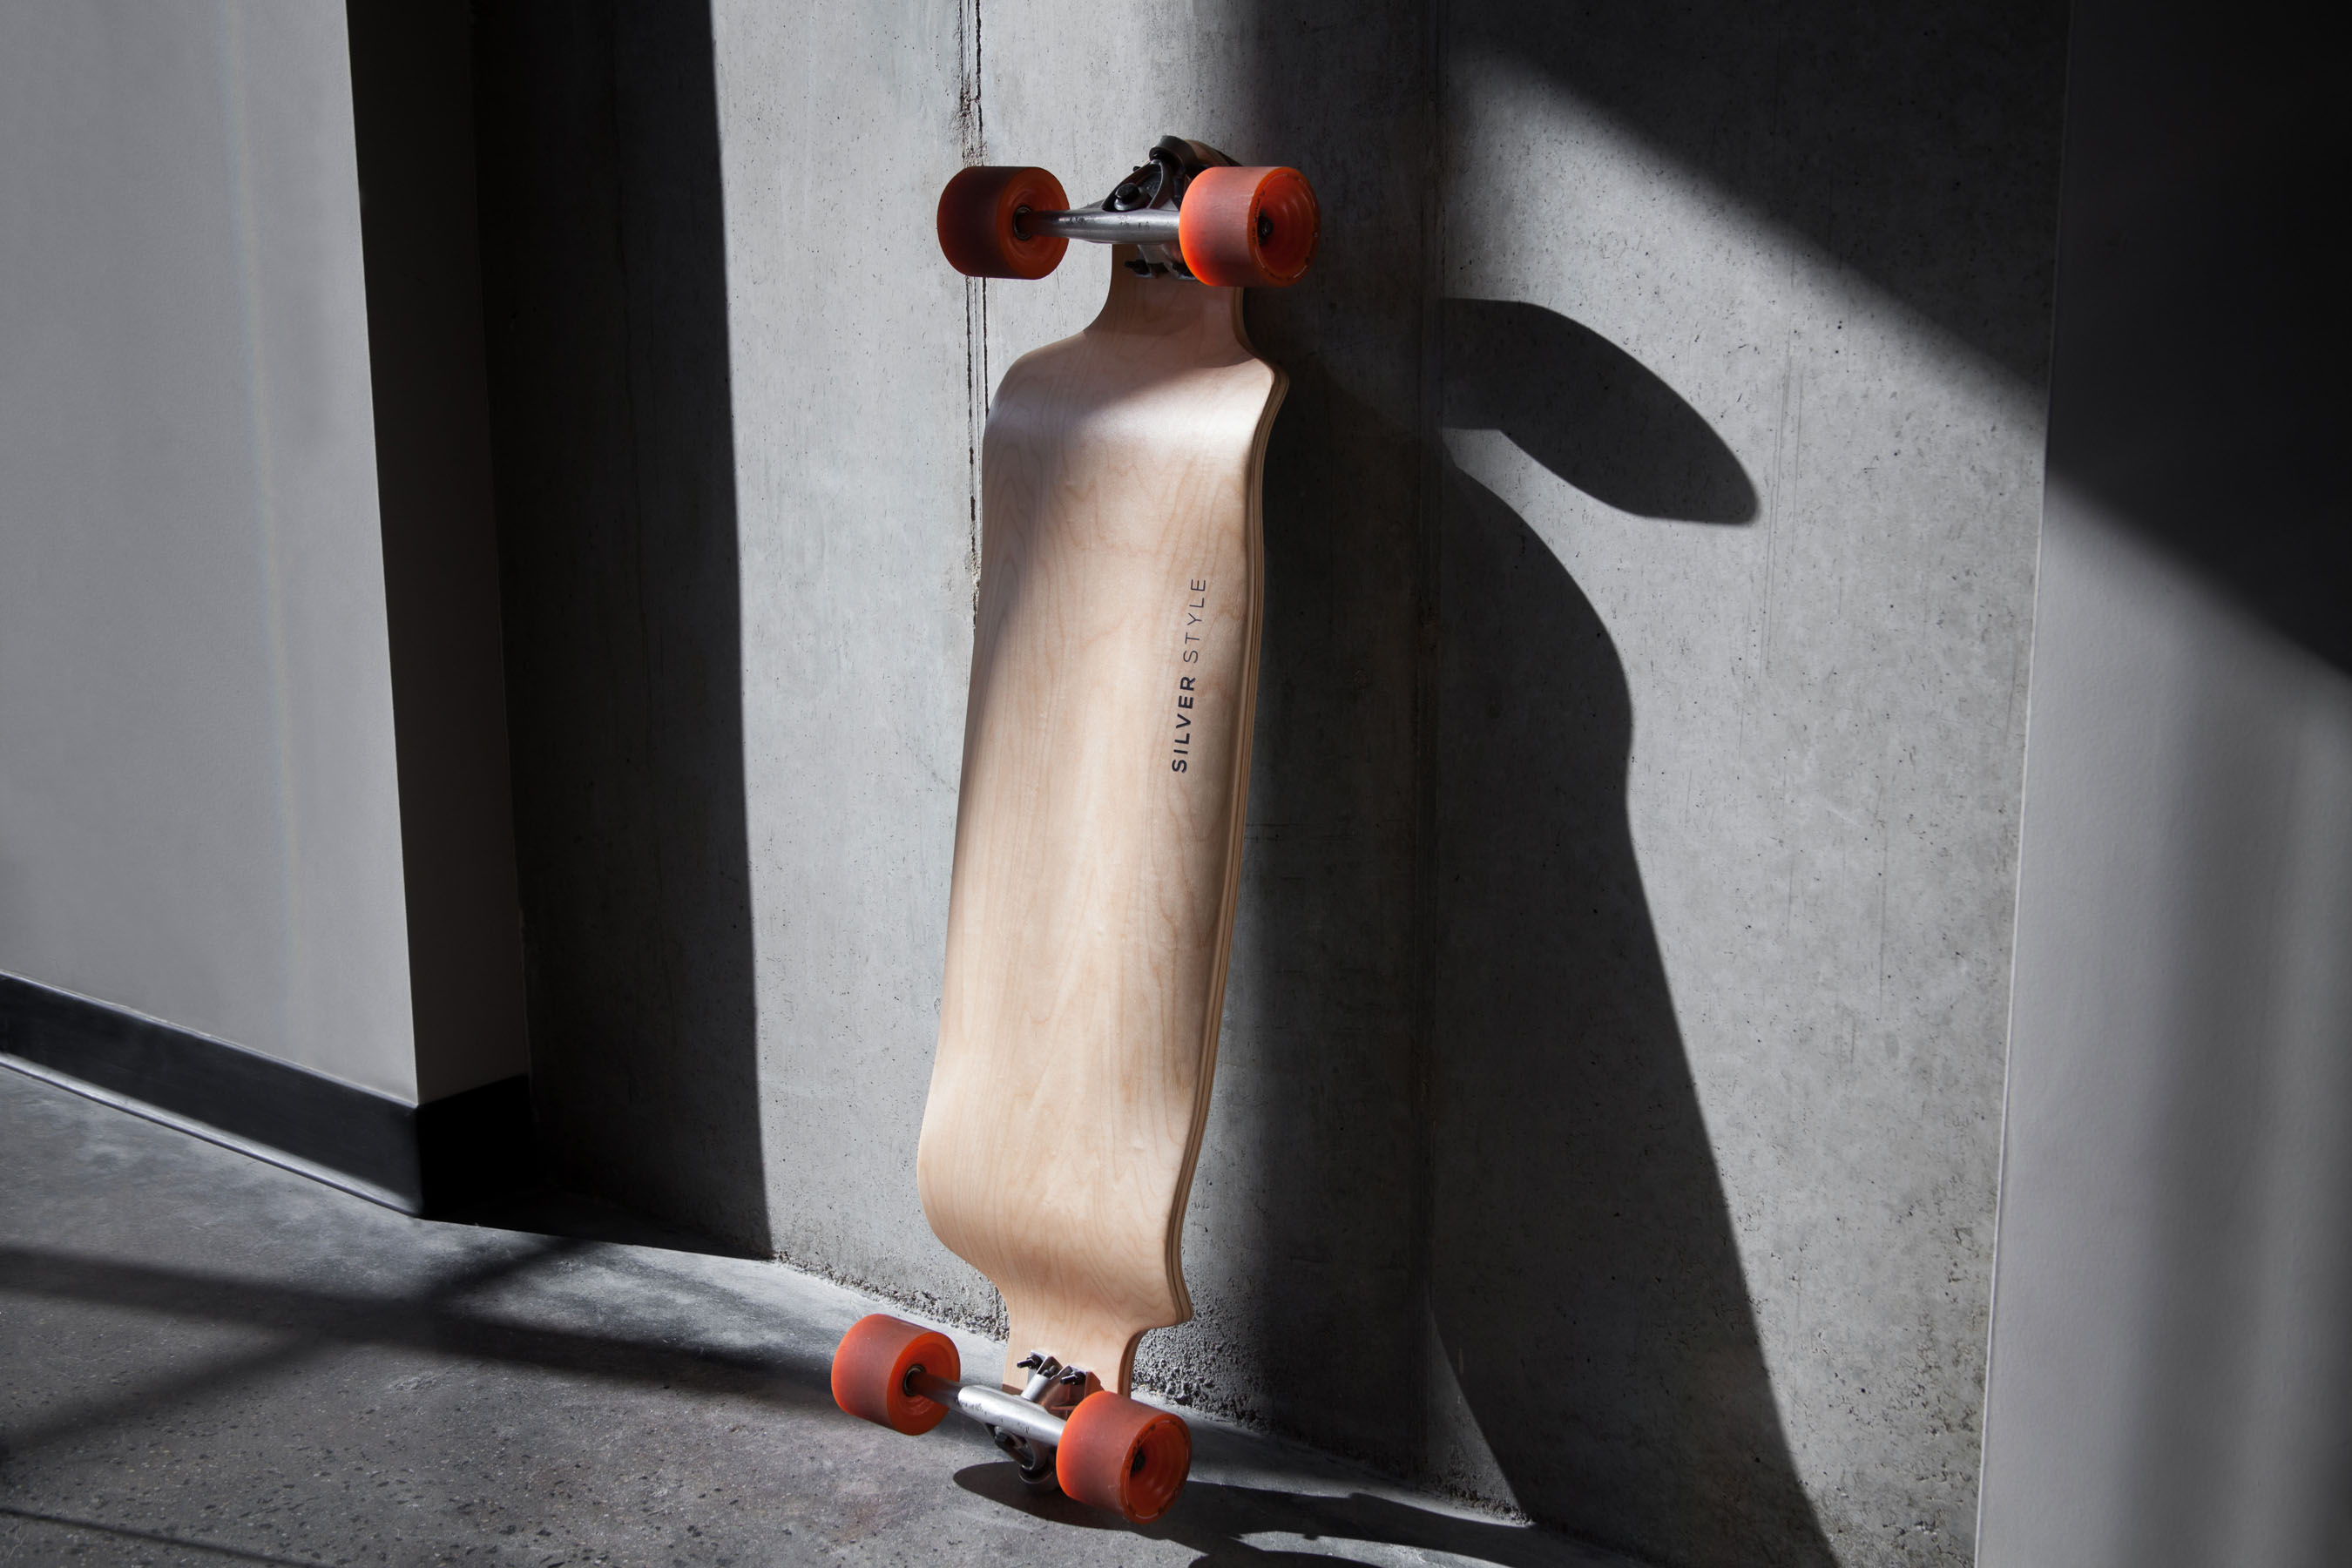 Longboard in the Sunlight at Silver Style HQ